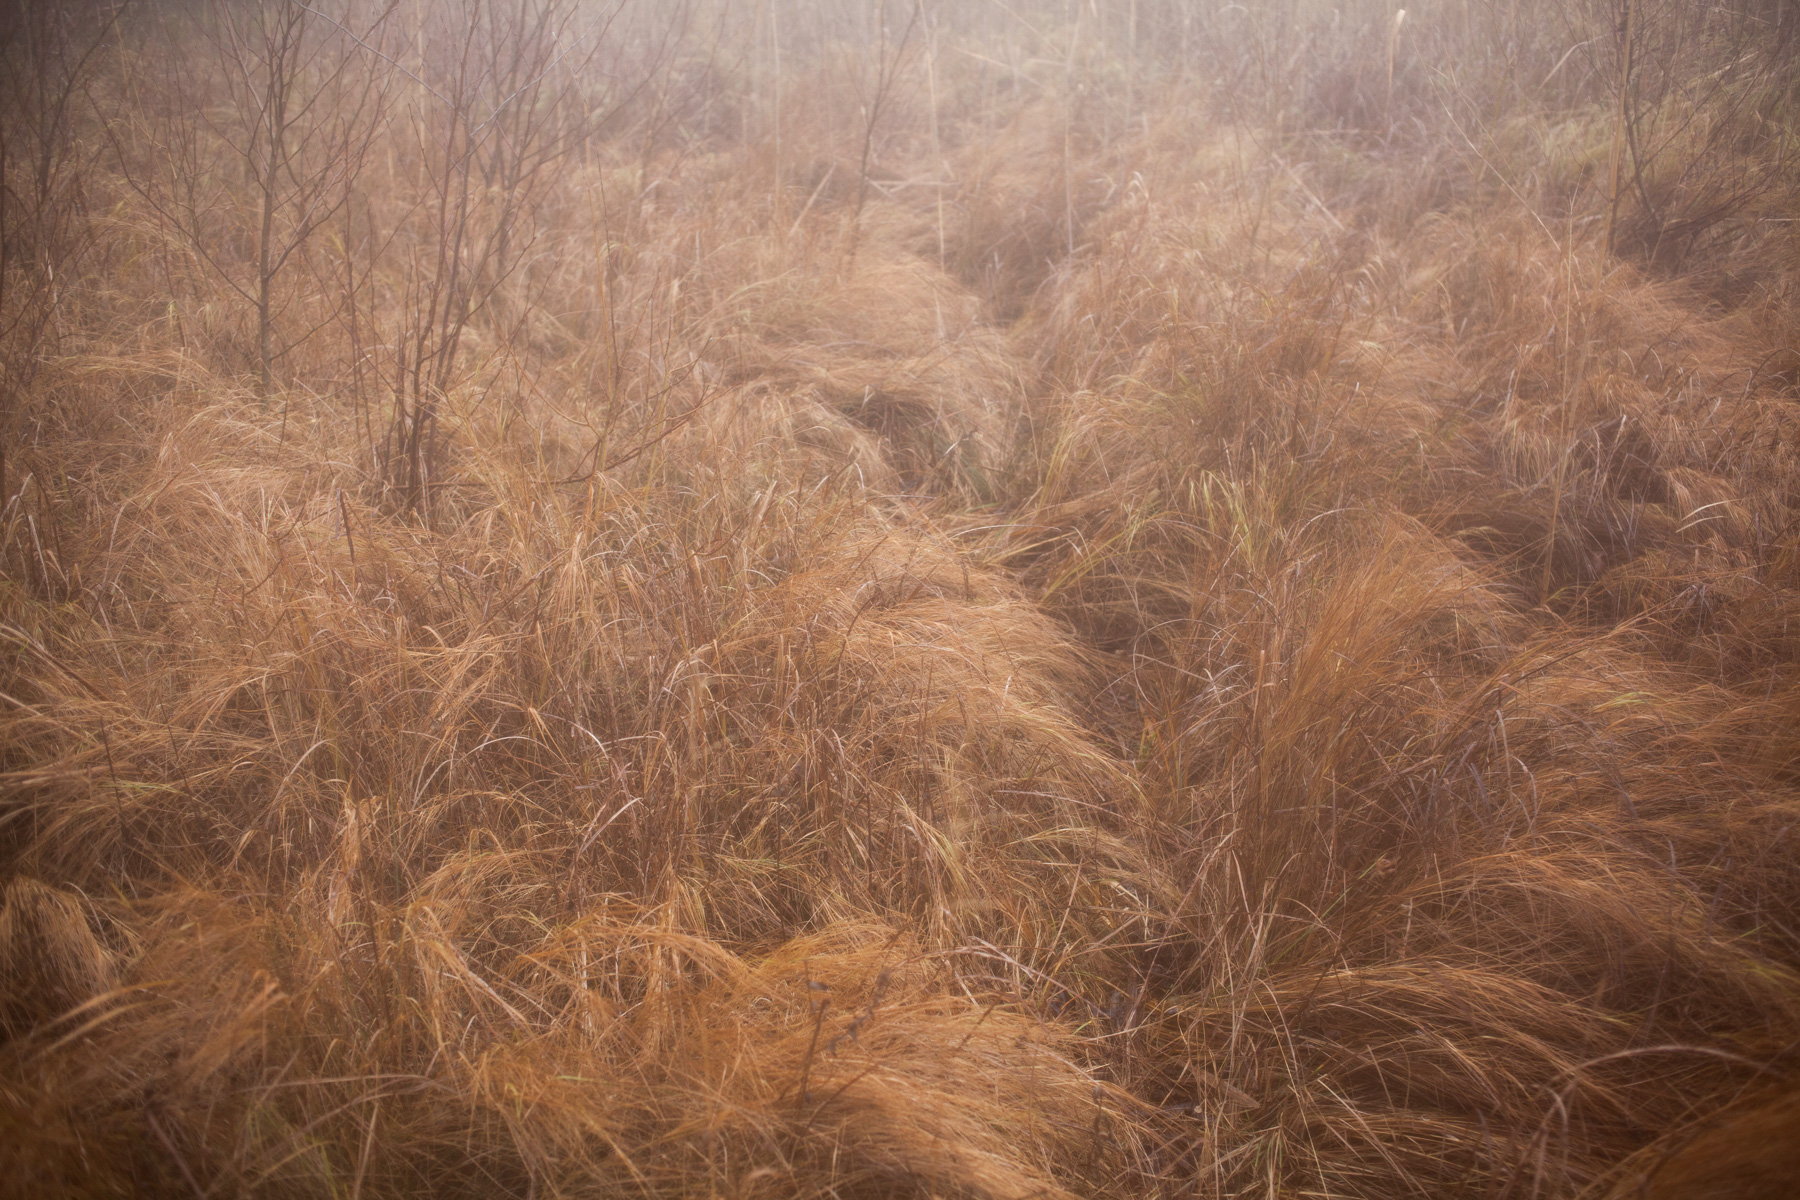 among-the-reeds-5